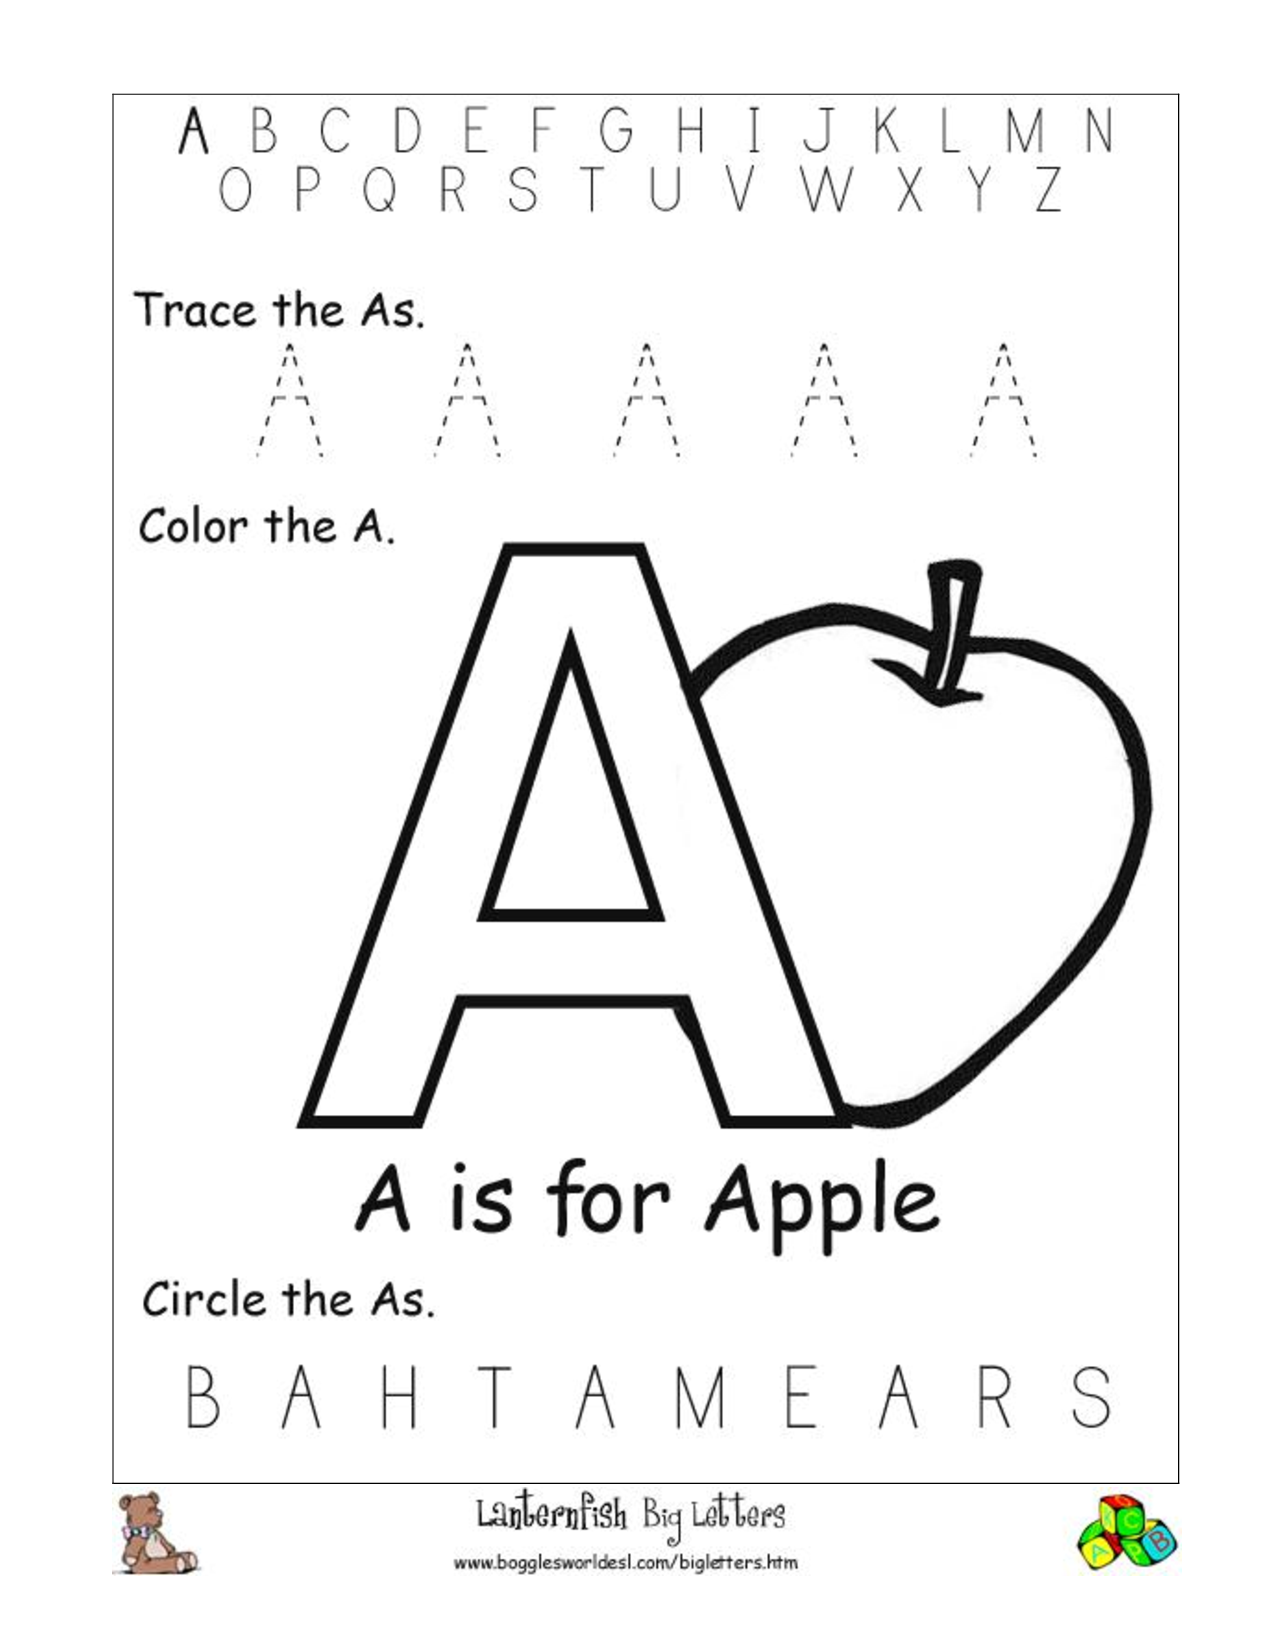 Pin by Ashley Davis on SLP Ideas | Pinterest | Alphabet worksheets ...